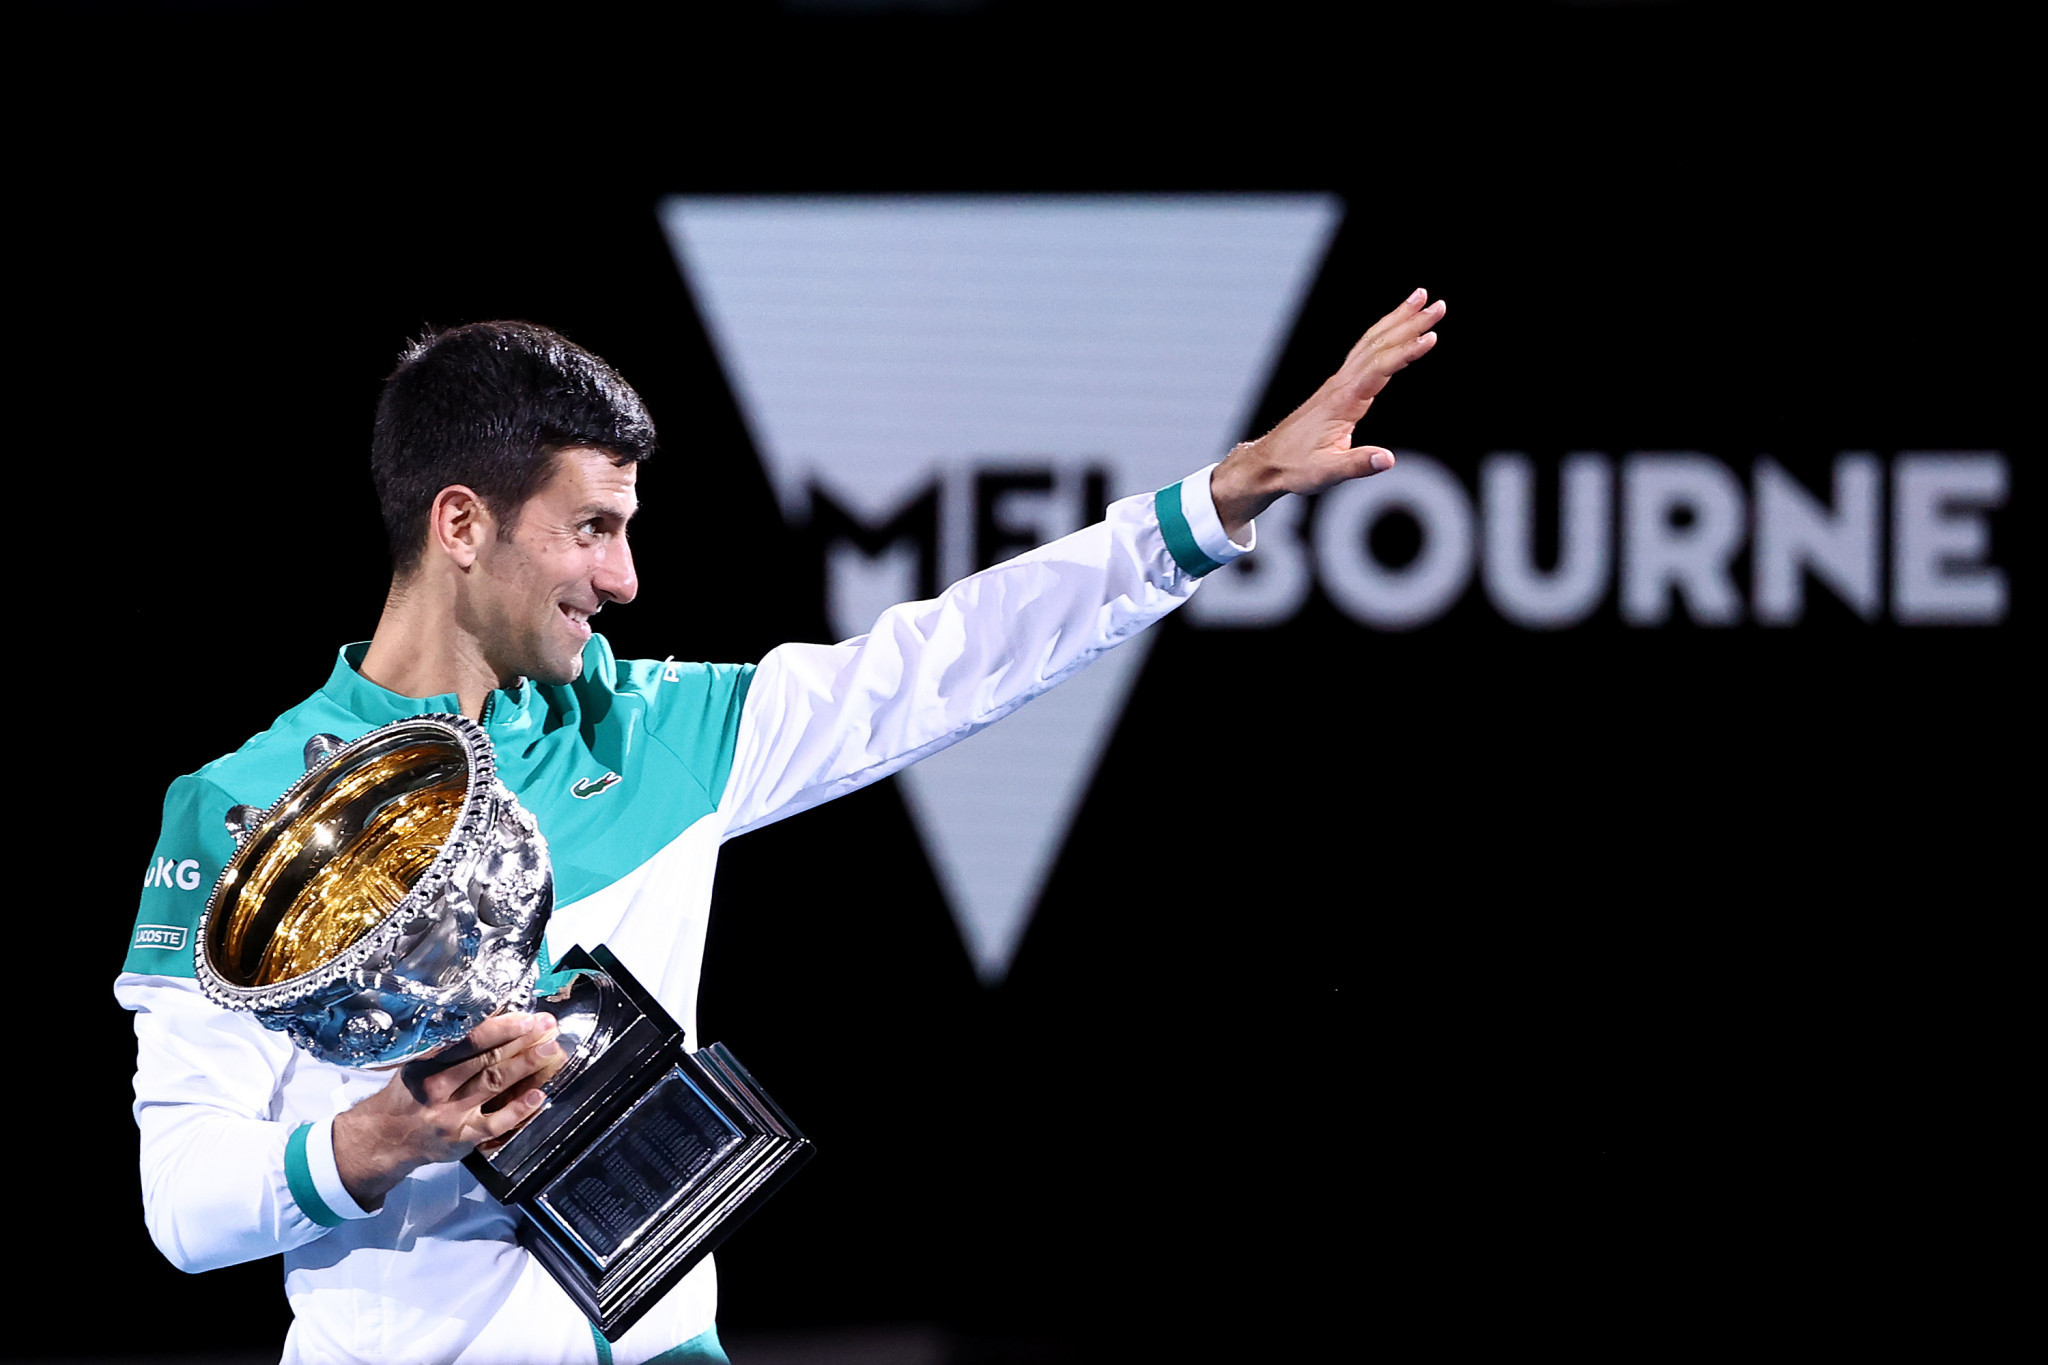 Djokovic waves to his supporters after collecting the trophy for the ninth time ©Getty Images